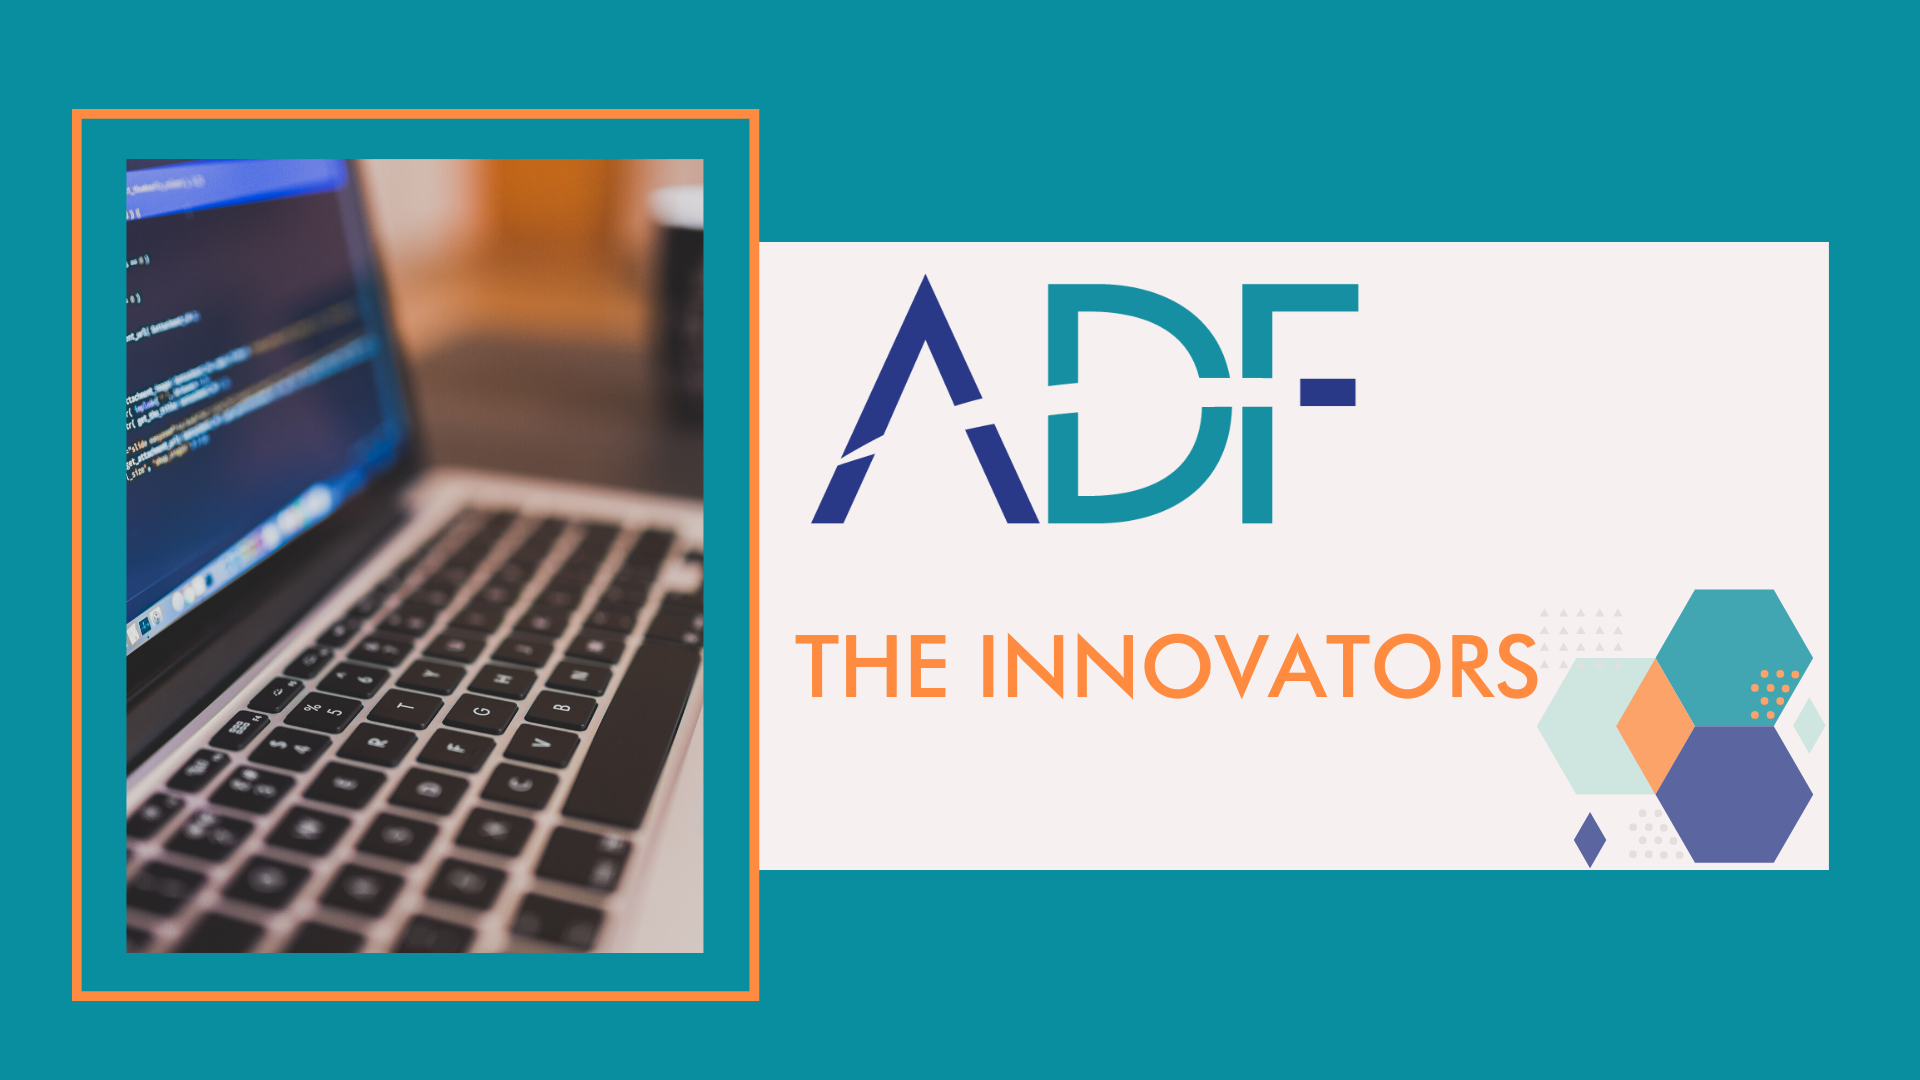 ADF The Innovators Blog Post 12.6.2019